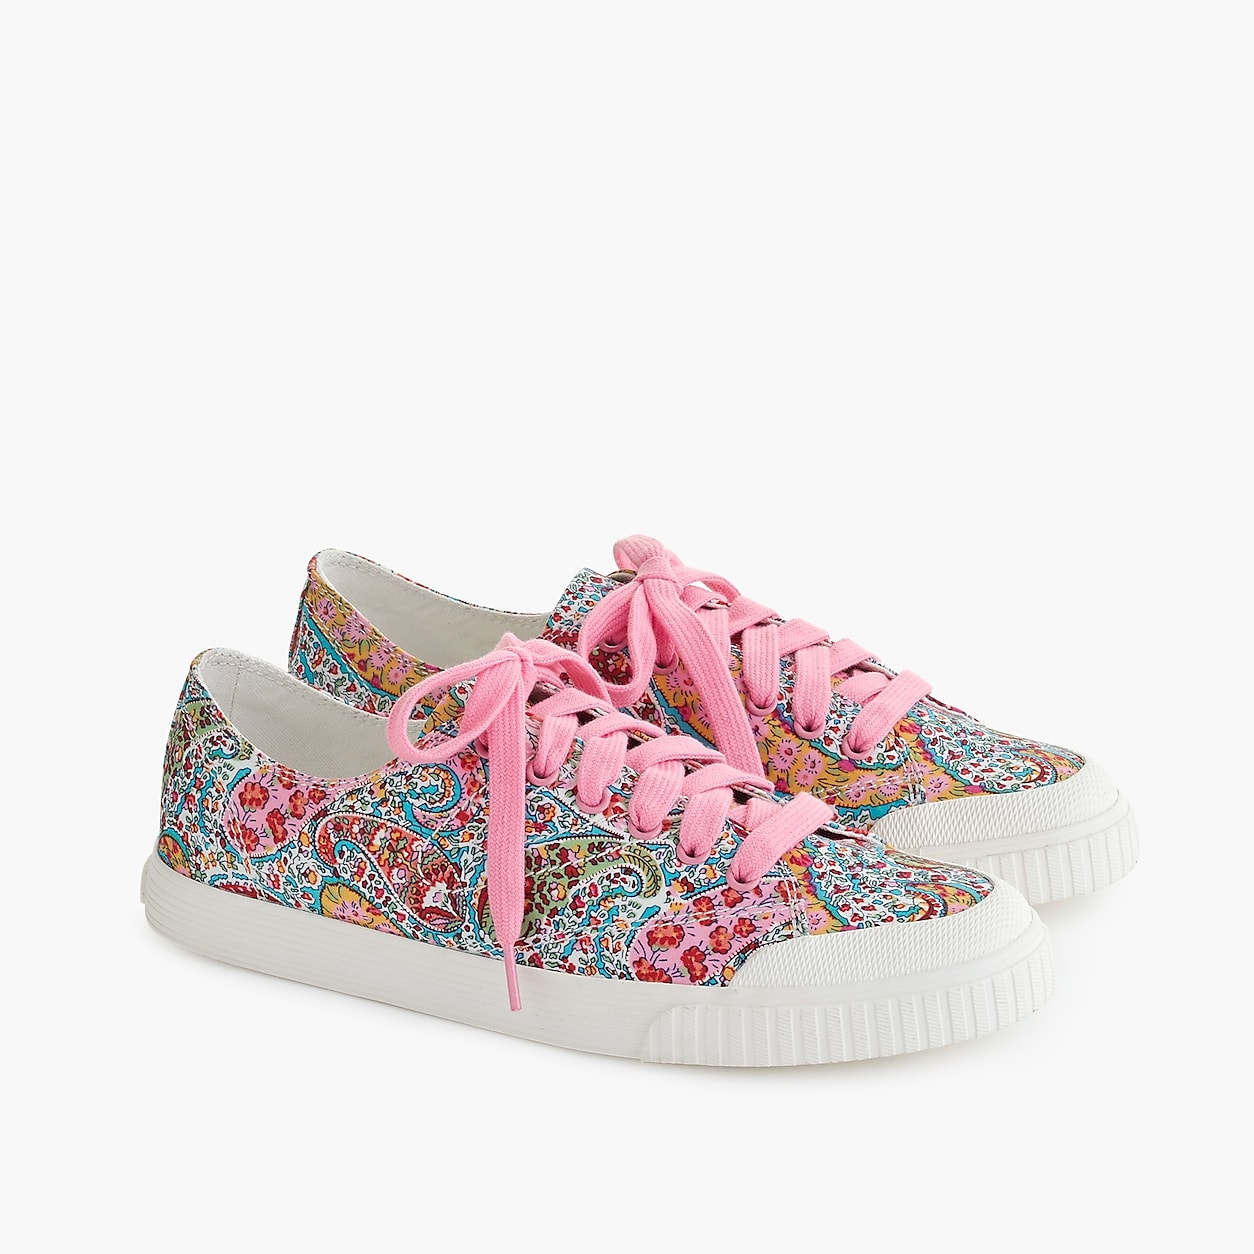 900681481c Tretorn Marley Canvas Sneakers In Liberty Floral Liberty Print